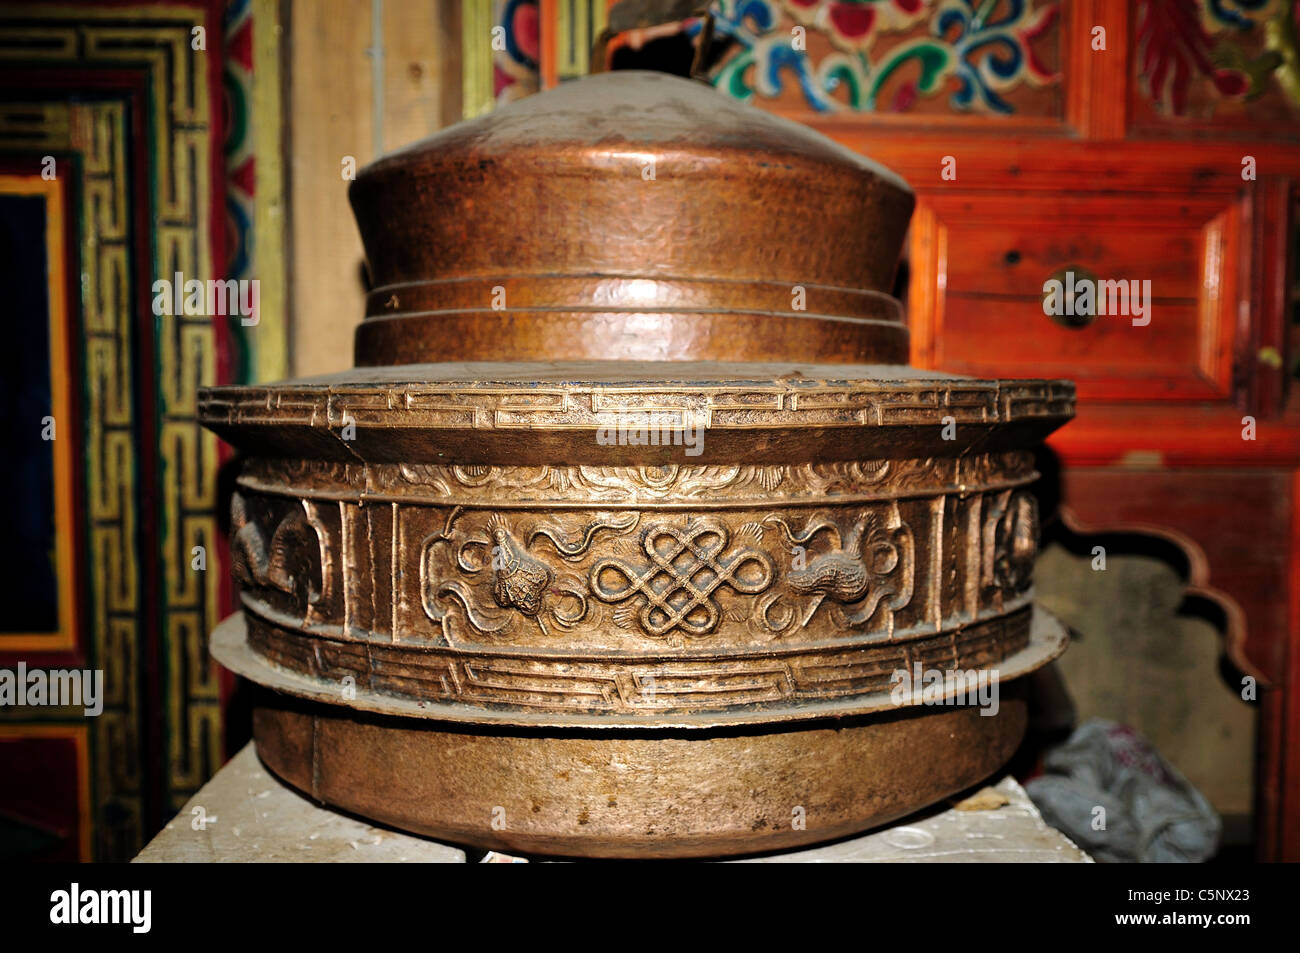 A copper cooking pot with Tibetan style decorations. Daocheng Yading, Sichuan, China. - Stock Image